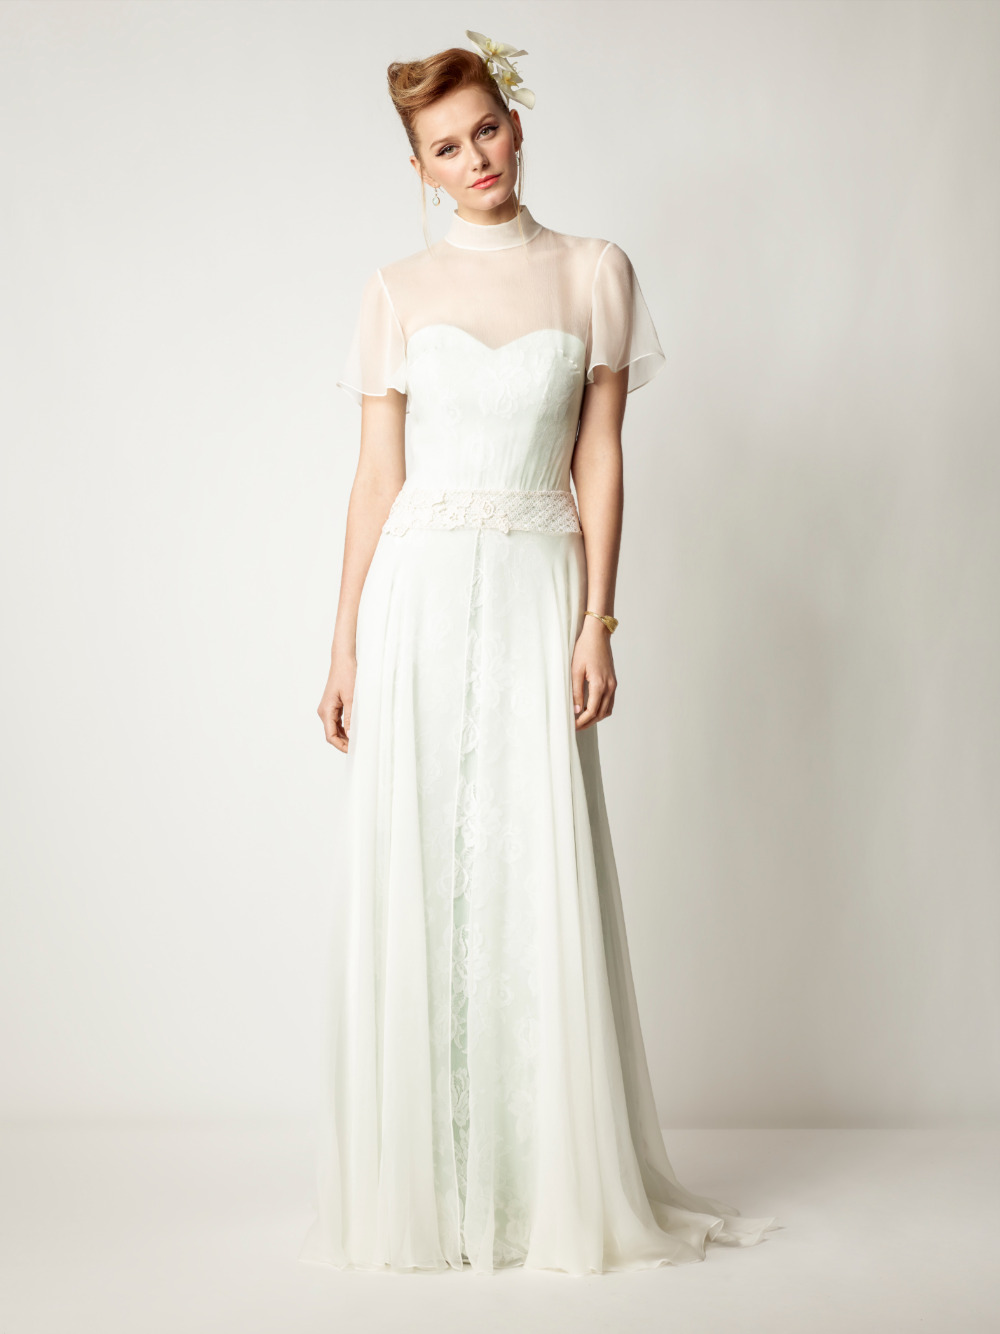 new product a748d 4c975 Gallery - Bohemian Chic Wedding Dresses From Rembo Styling